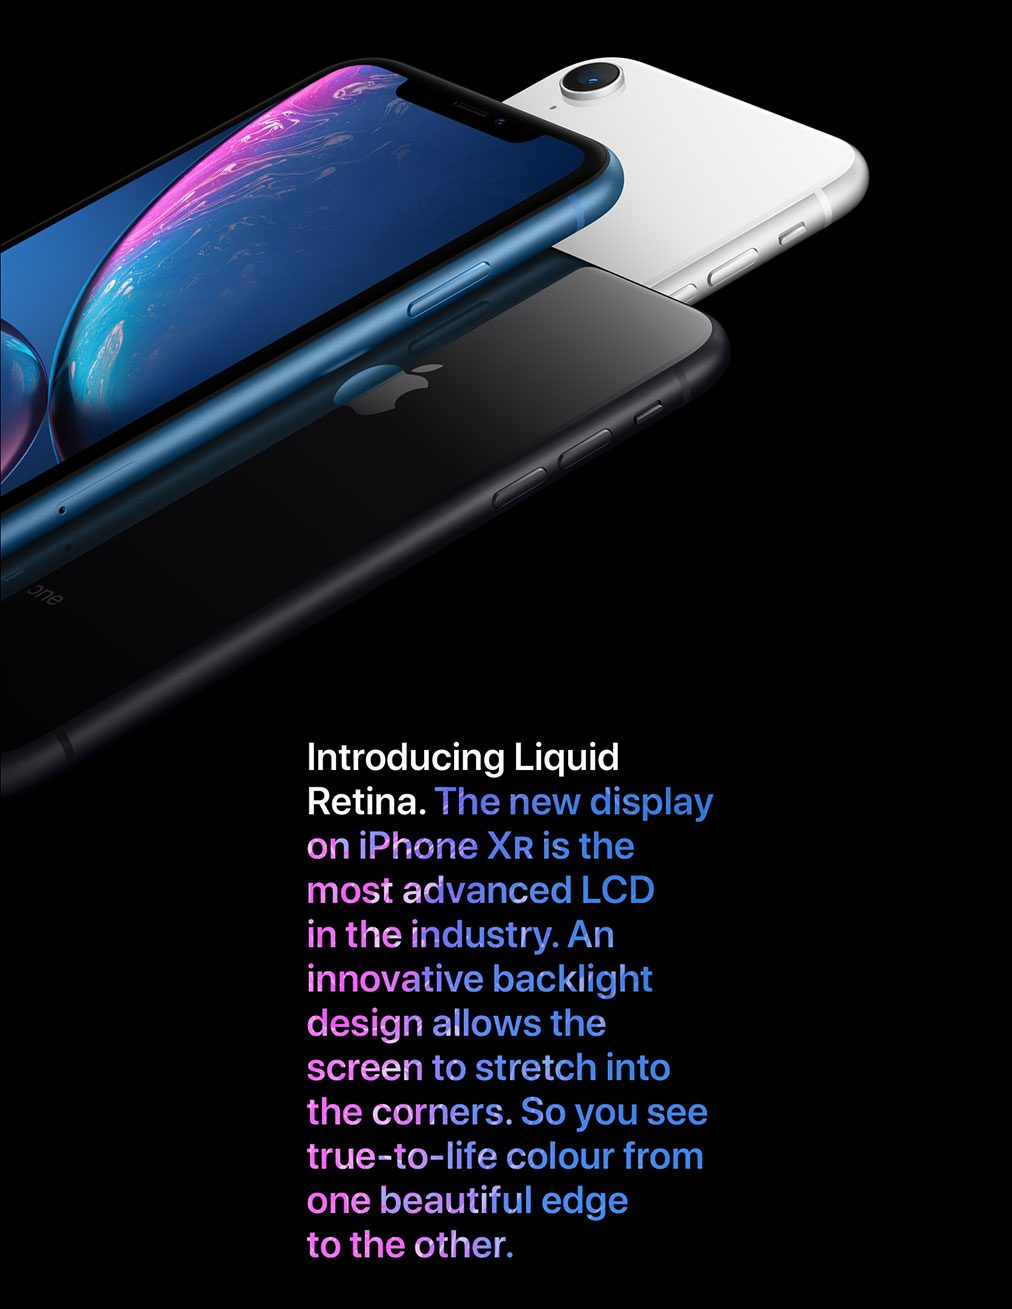 iPhone XR. Introducing Liquid Retina.